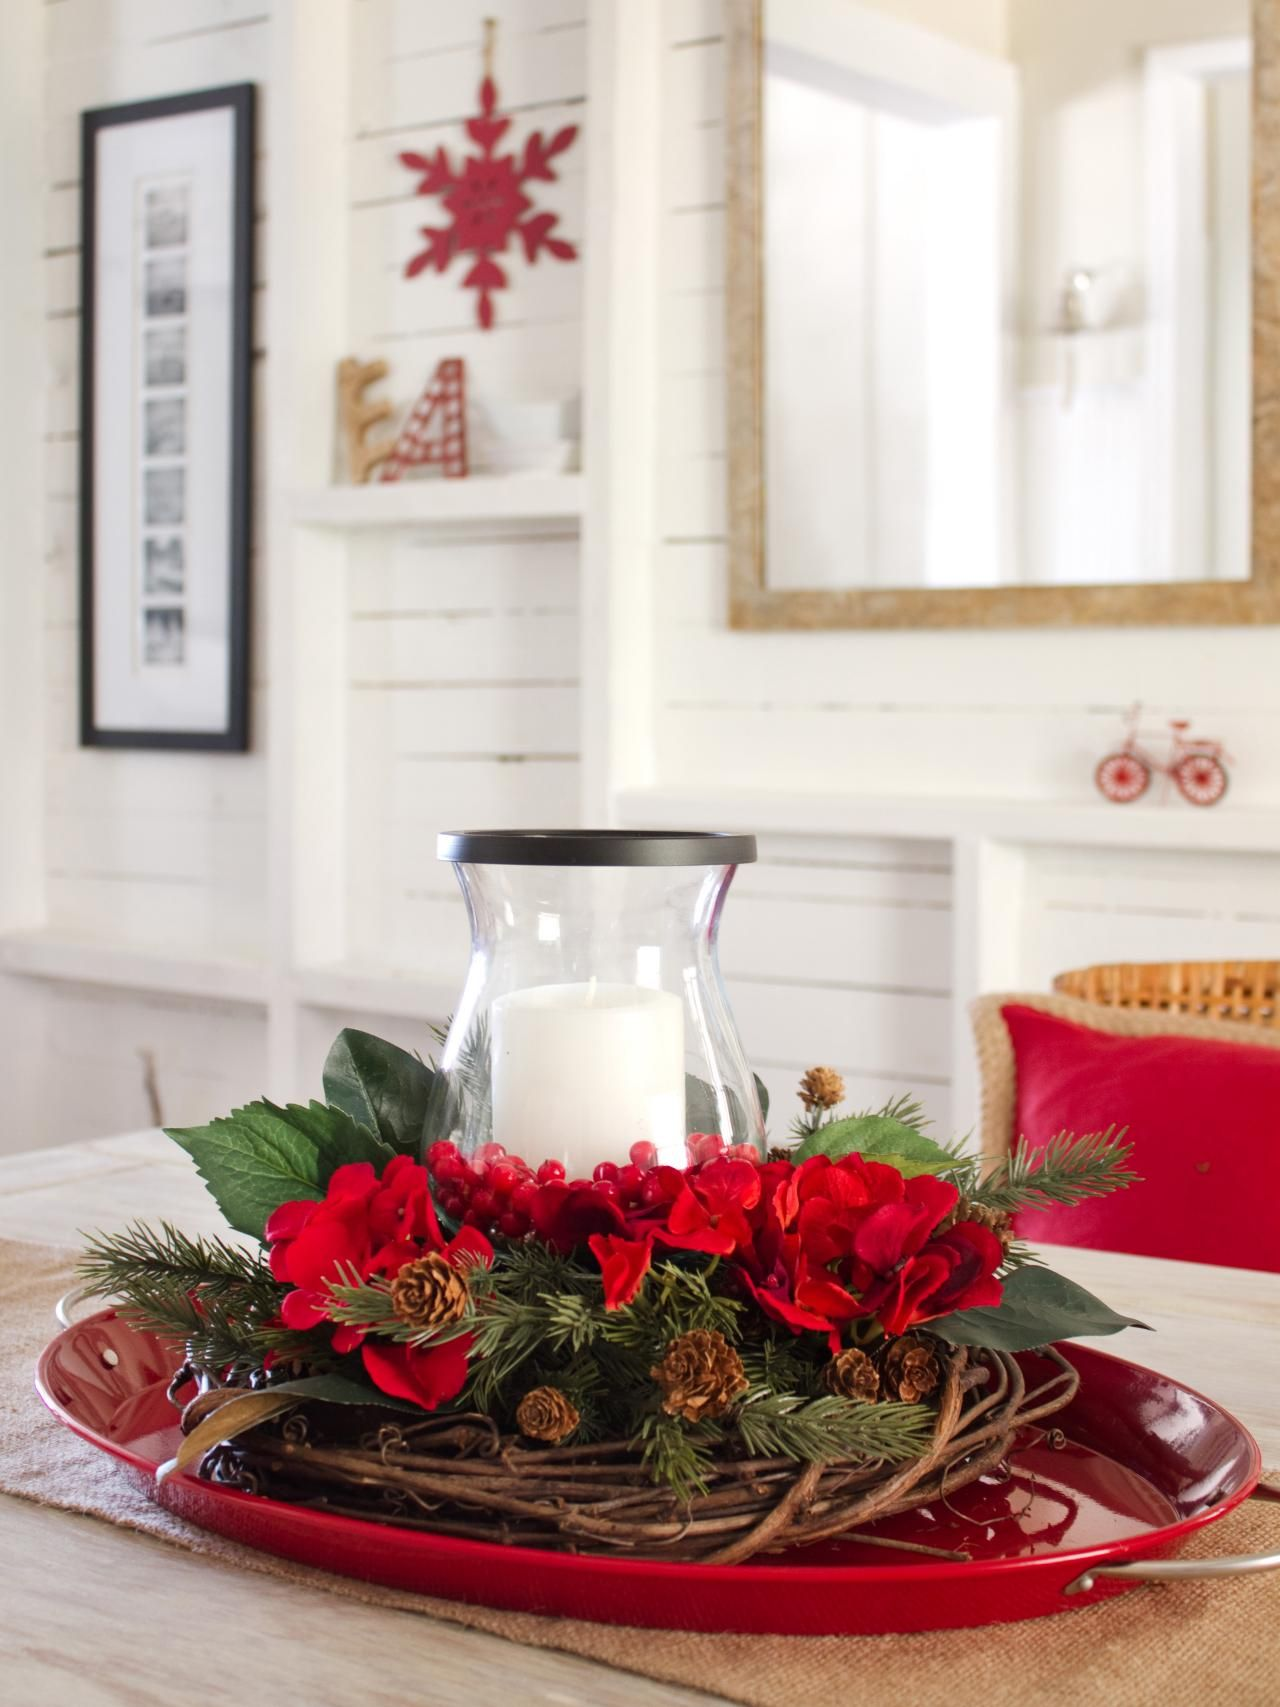 How To Make A Layered Holiday Centerpiece Holiday Centerpieces Holiday Centerpieces Diy Christmas Table Decorations